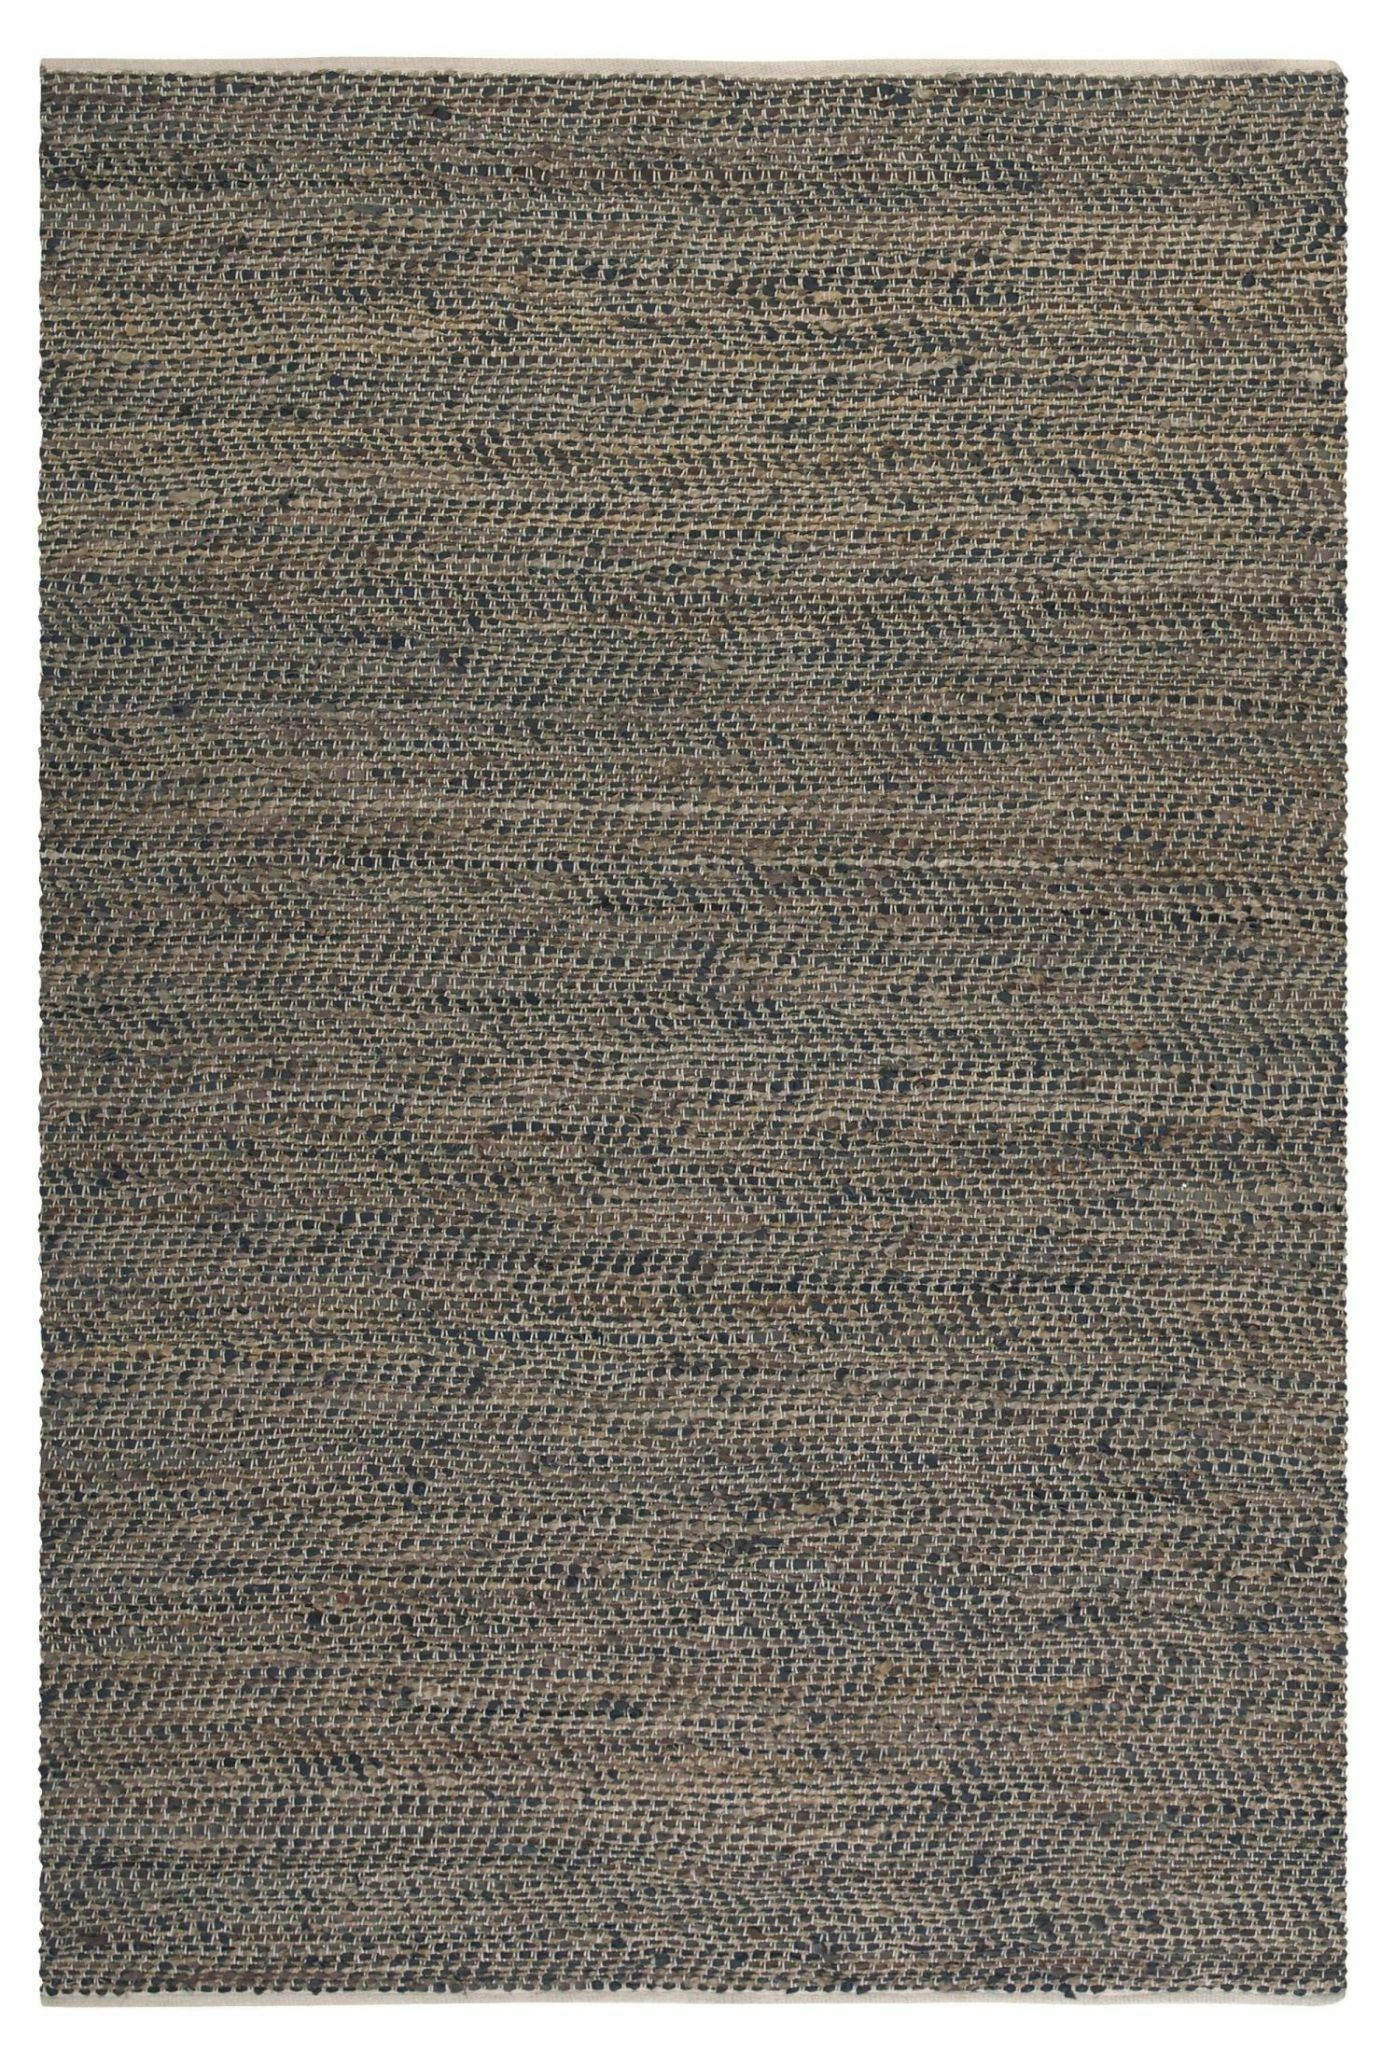 Neidig Hand Woven Leather Rug Rug Size: 9' x 12'